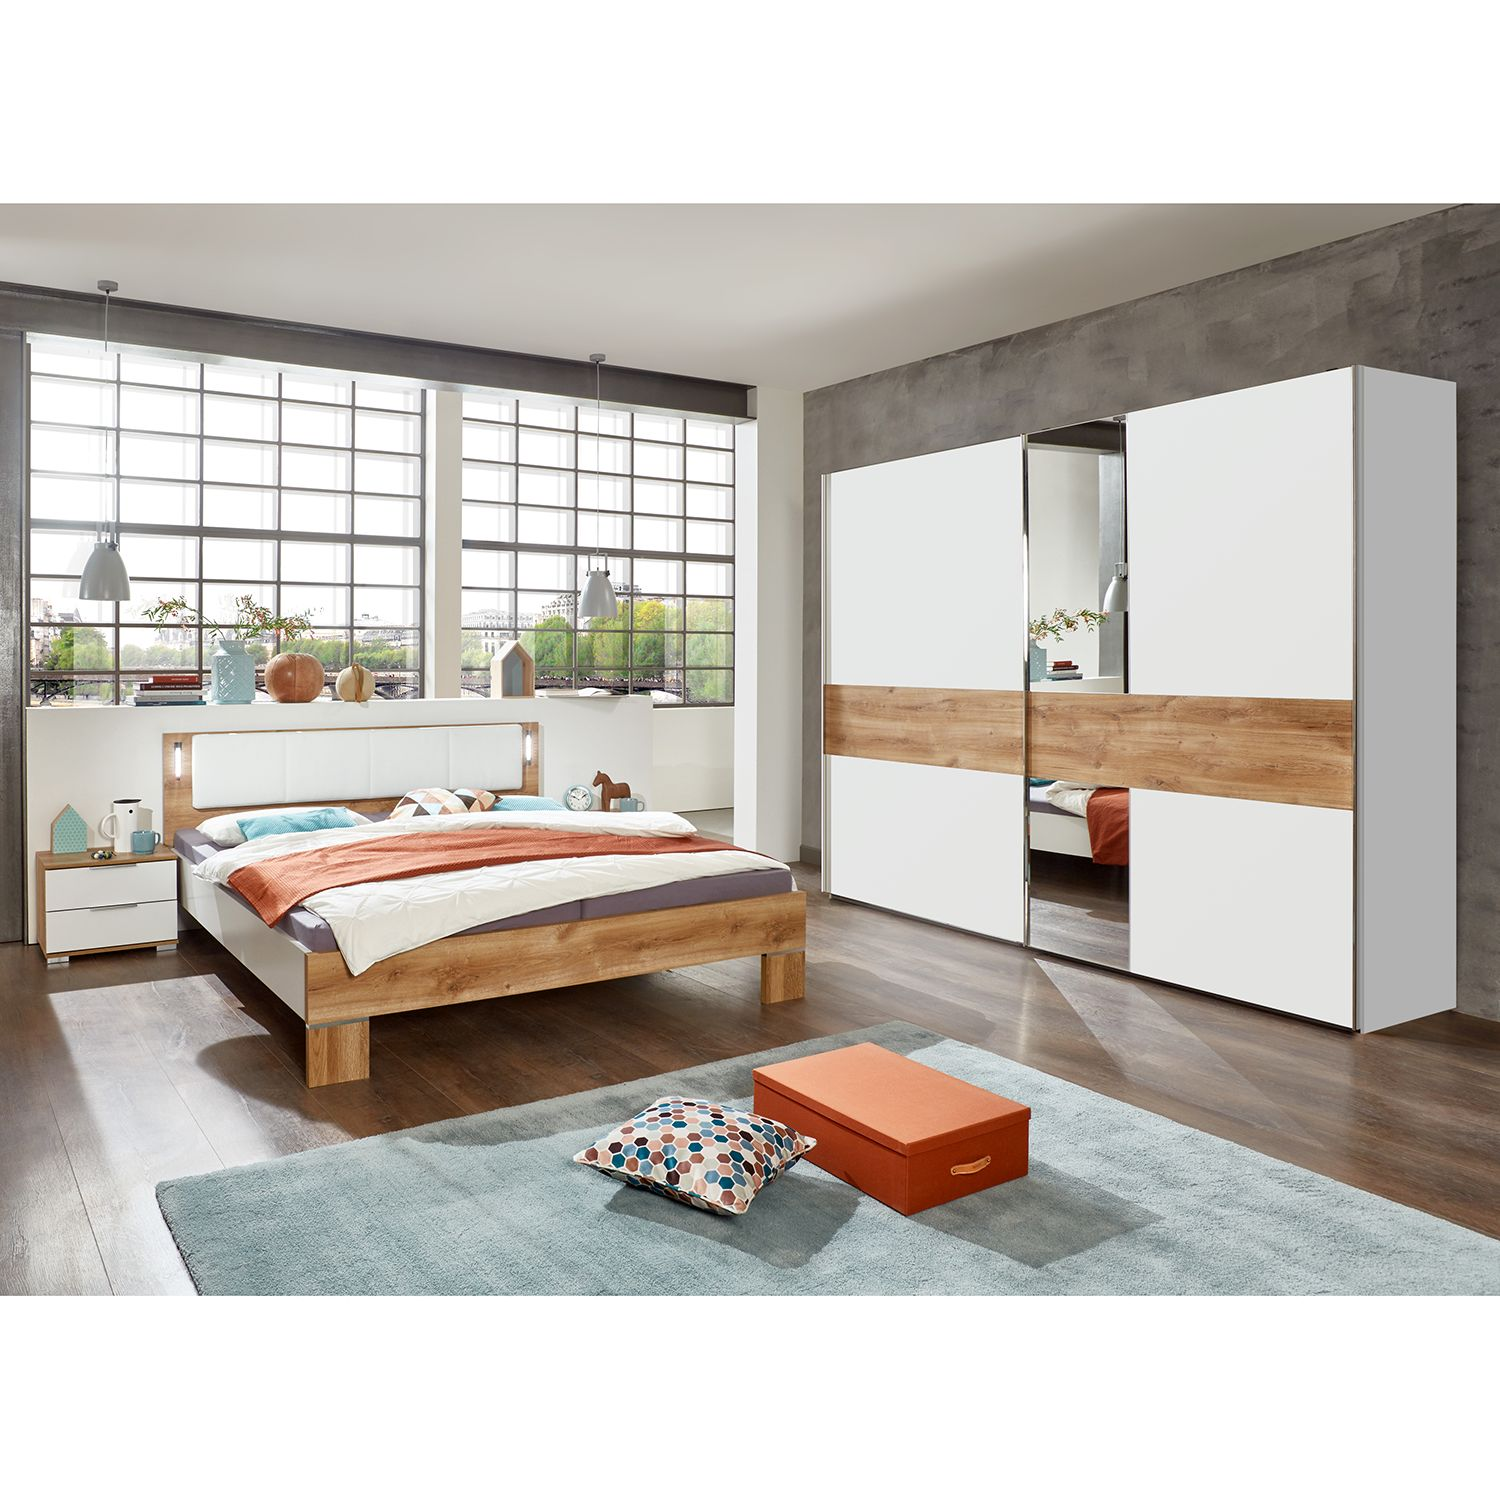 Pin Von Aya Shabana Auf Small Bedroom Ideas For Couples Ideen